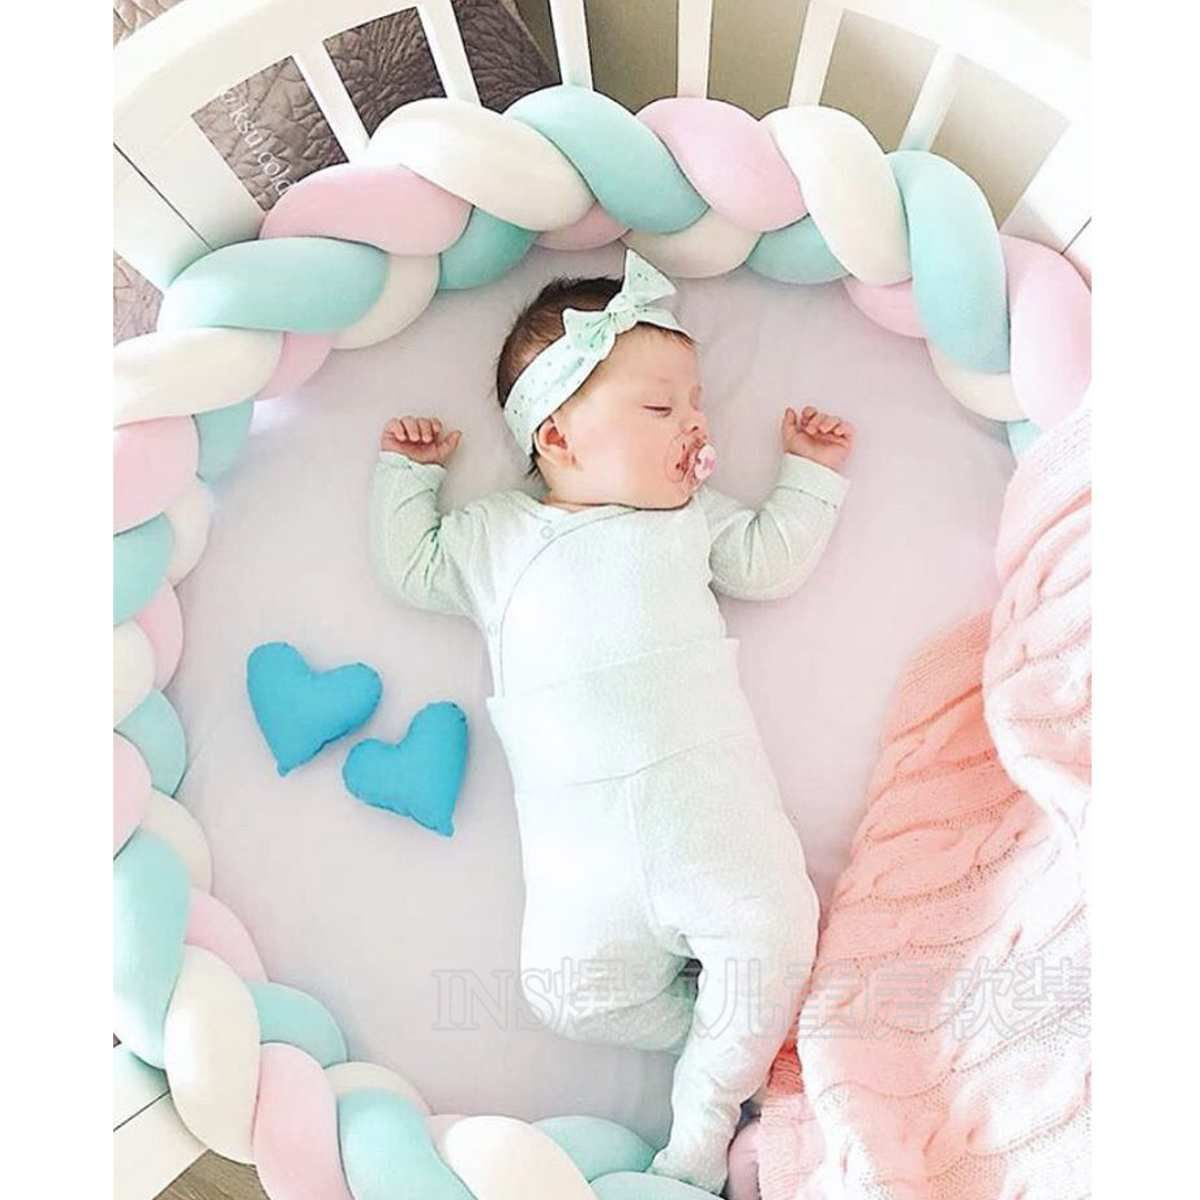 Sweet Baby Soft Knot Pillow Braided Crib Bumper Decorative Baby Bedding Sheets Cushion